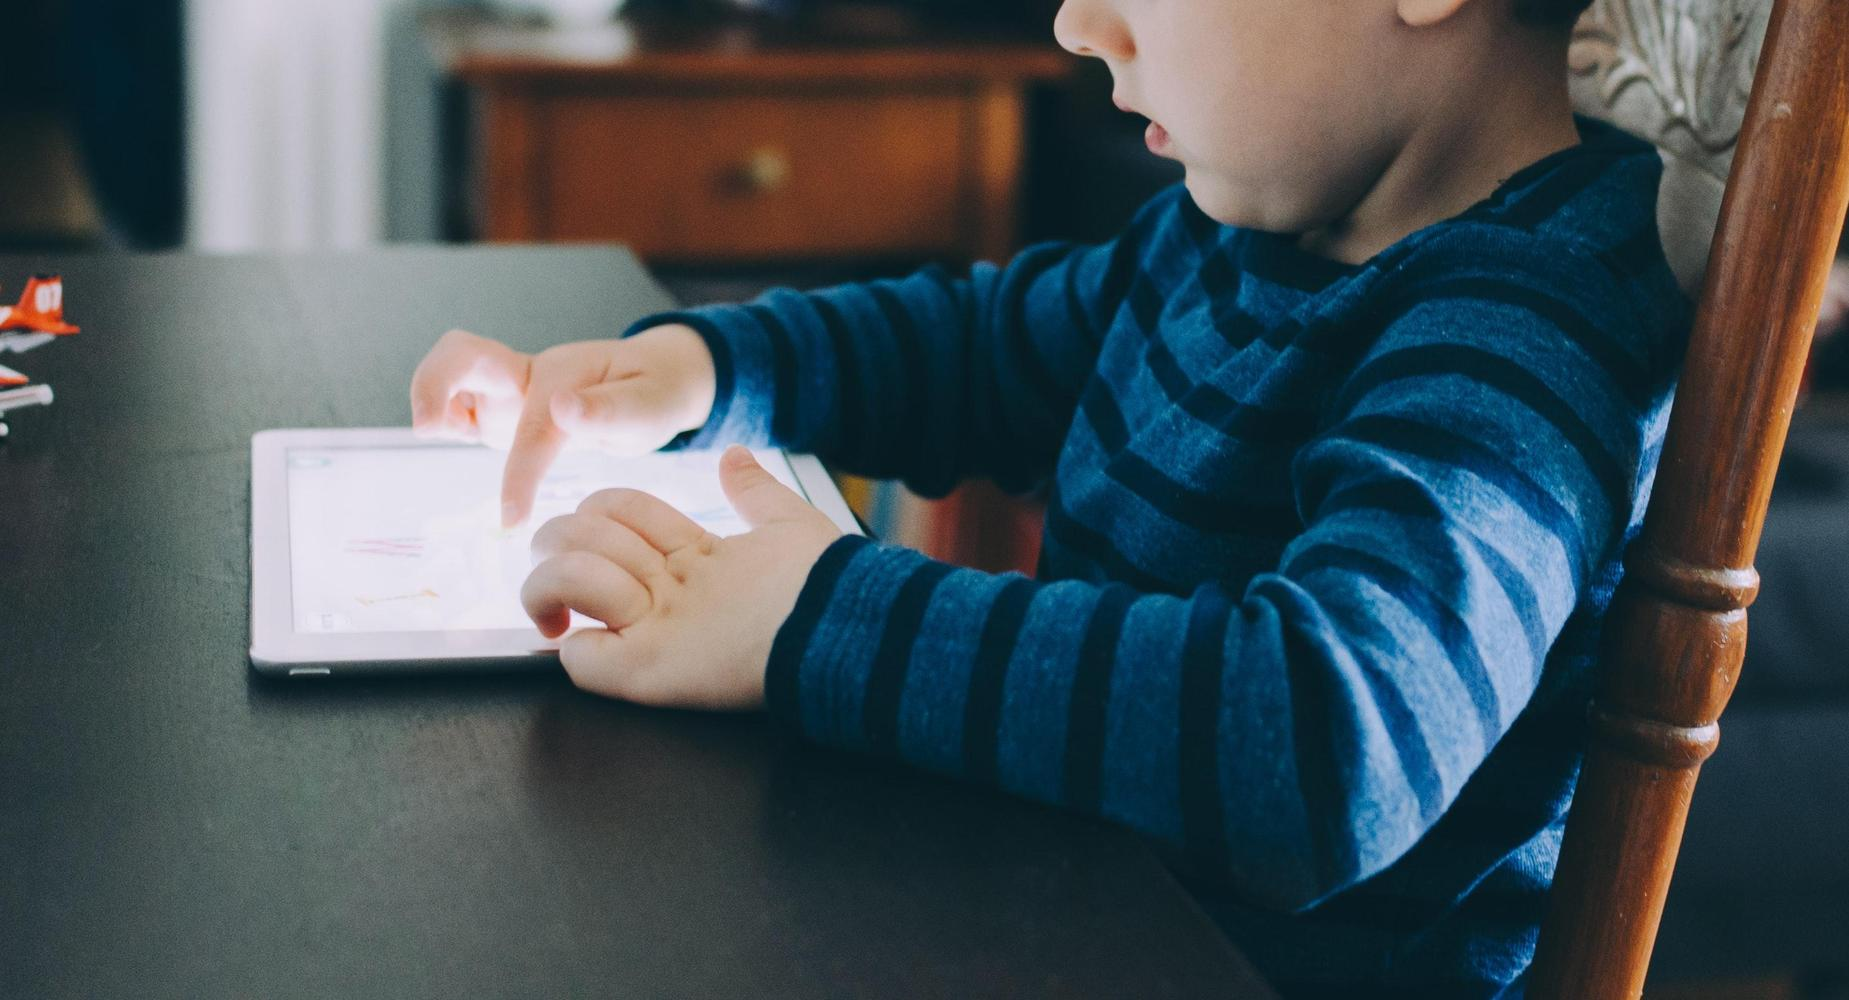 a young child sitting at a table uses an ipad